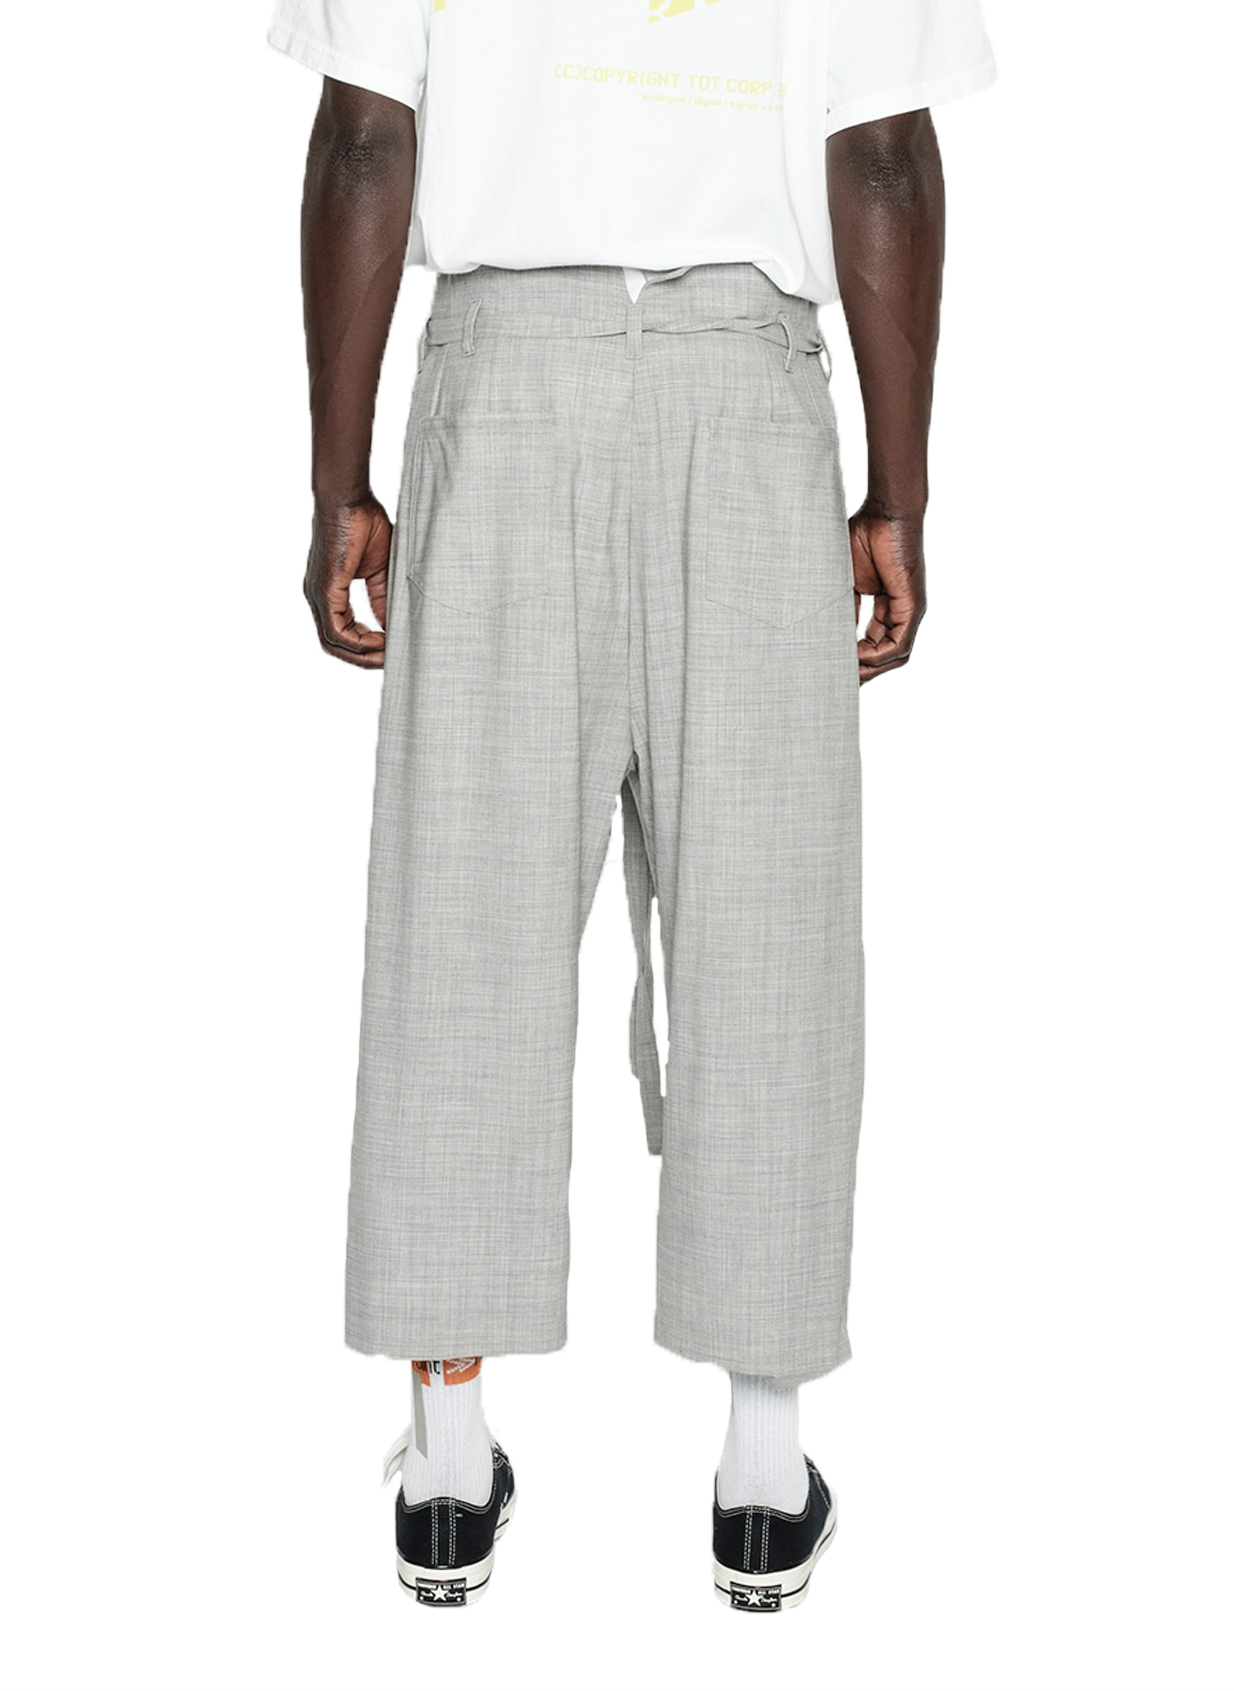 DOCTRINE PANT - GREY MELANGE